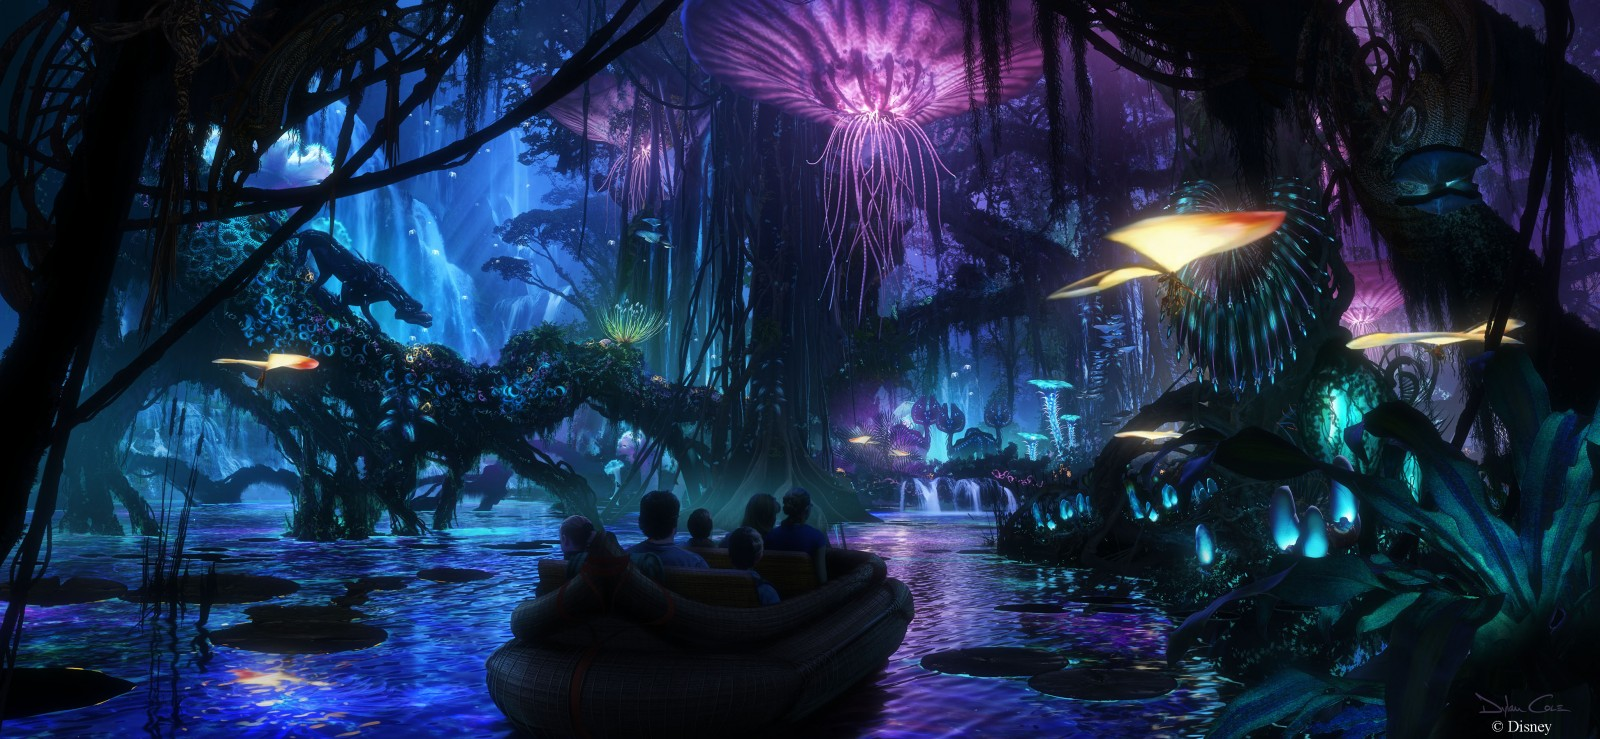 Disney's Animal Kingdom Avatar-inspired Land and Nighttime announcements Concept Art